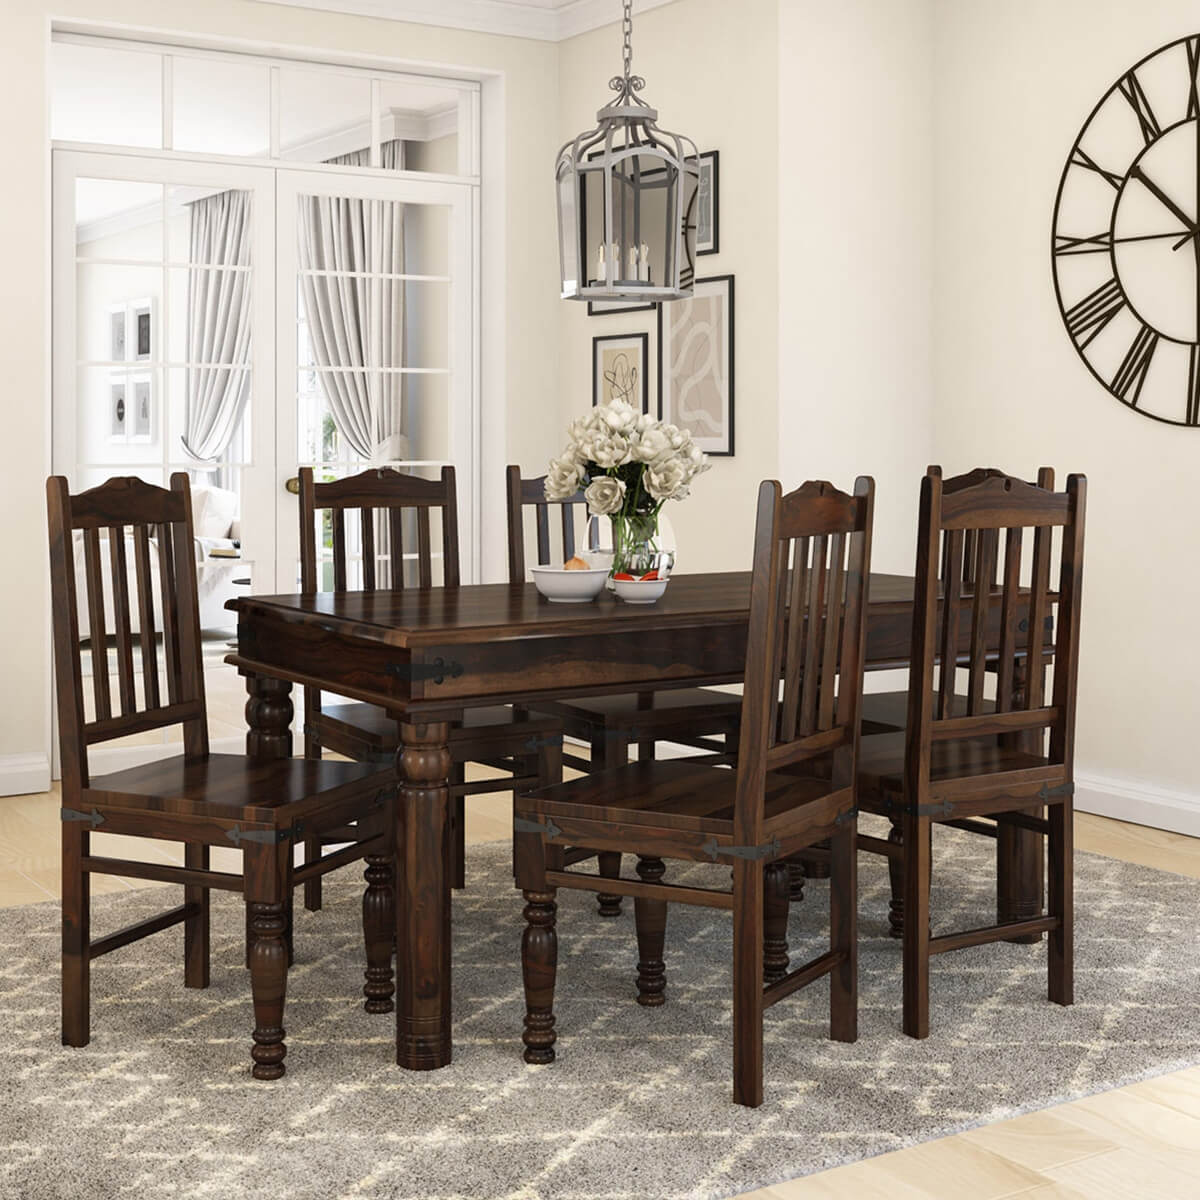 Oklahoma Farmhouse Traditional 5pc Solid Wood Country